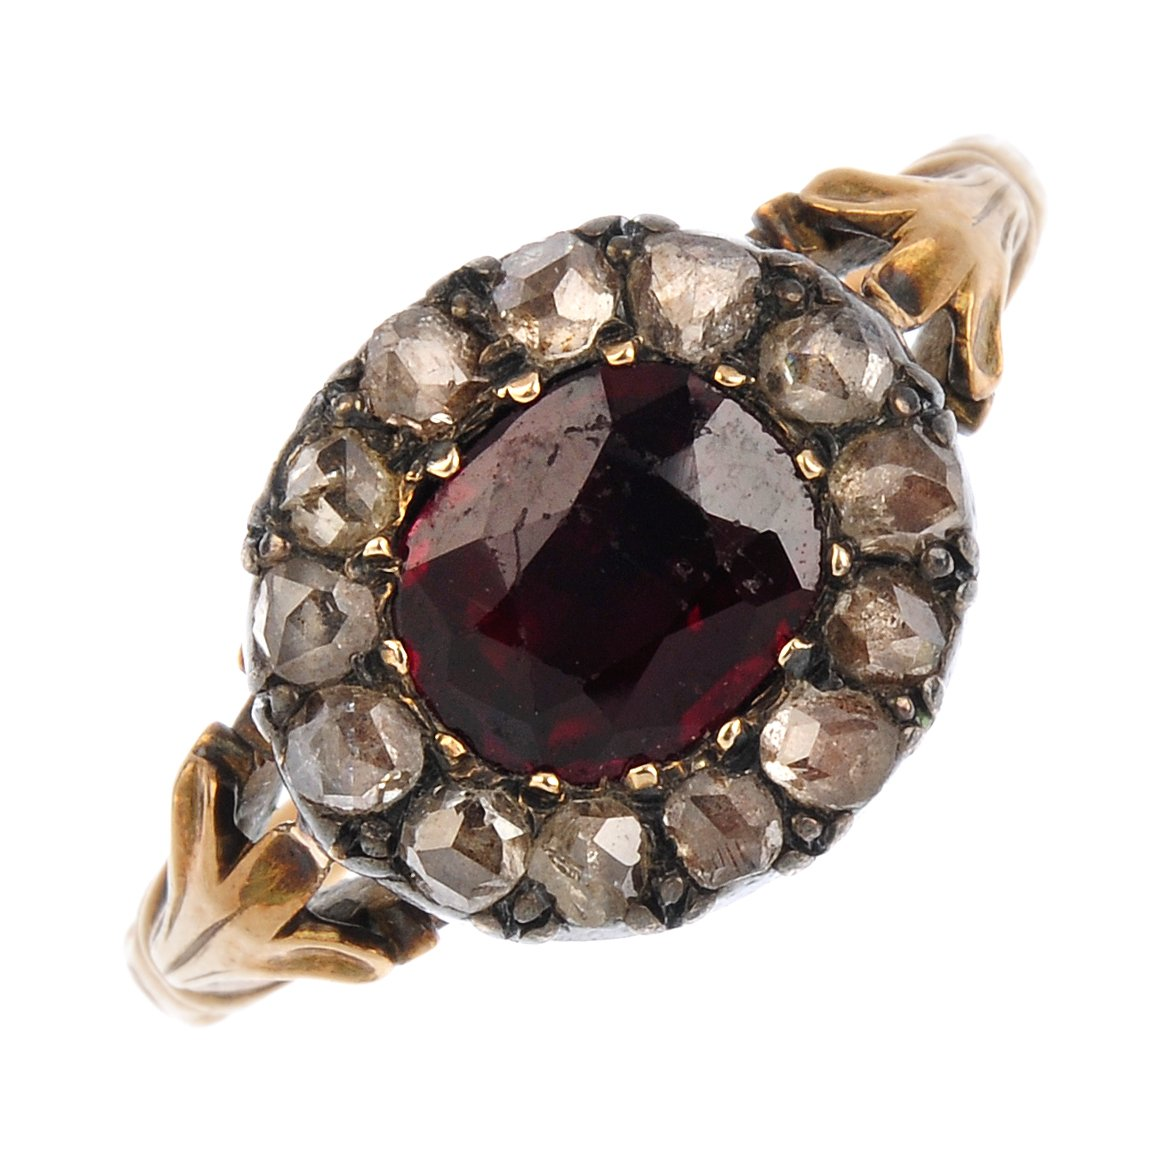 "<a href=""https://www.fellows.co.uk/2104-lot-384-A-late-Georgian-gold-garnet-and-diamond-cluster-ring?utm_source=Ageless%20Heirlooms&utm_medium=blog&utm_campaign=Ageless%20Heirlooms%20Vintage&utm_content=Blog%20and%20social"">LOT 384</a>"